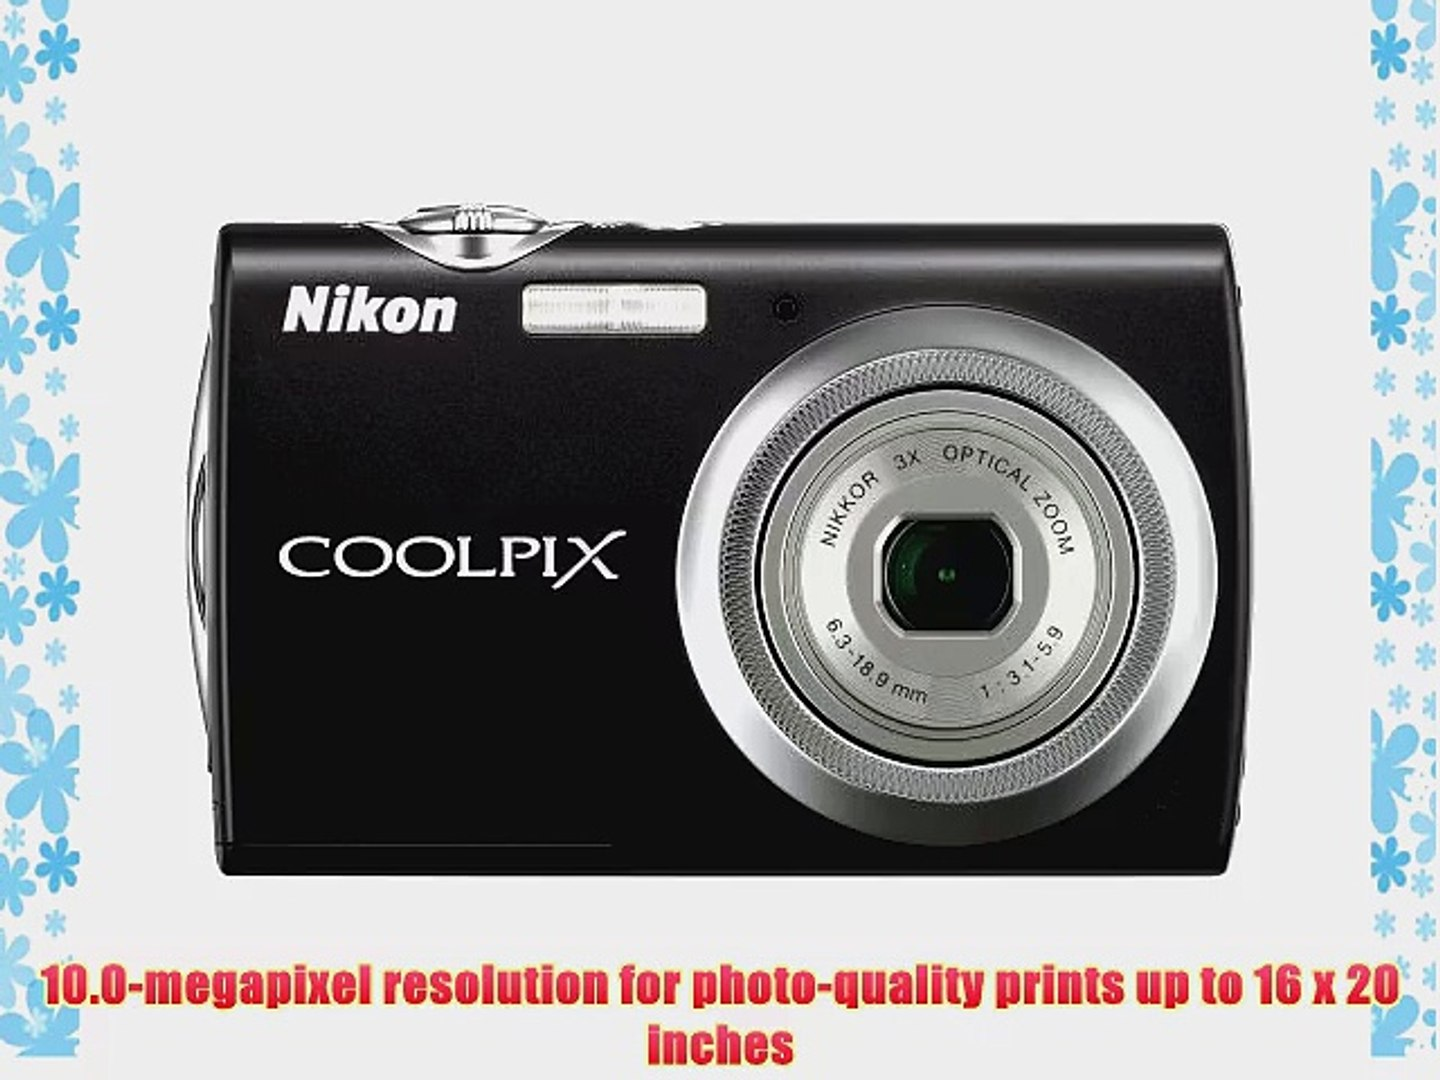 Nikon Coolpix S230 10MP Digital Camera with 3x Optical Zoom and 3 inch Touch Panel LCD (Jet